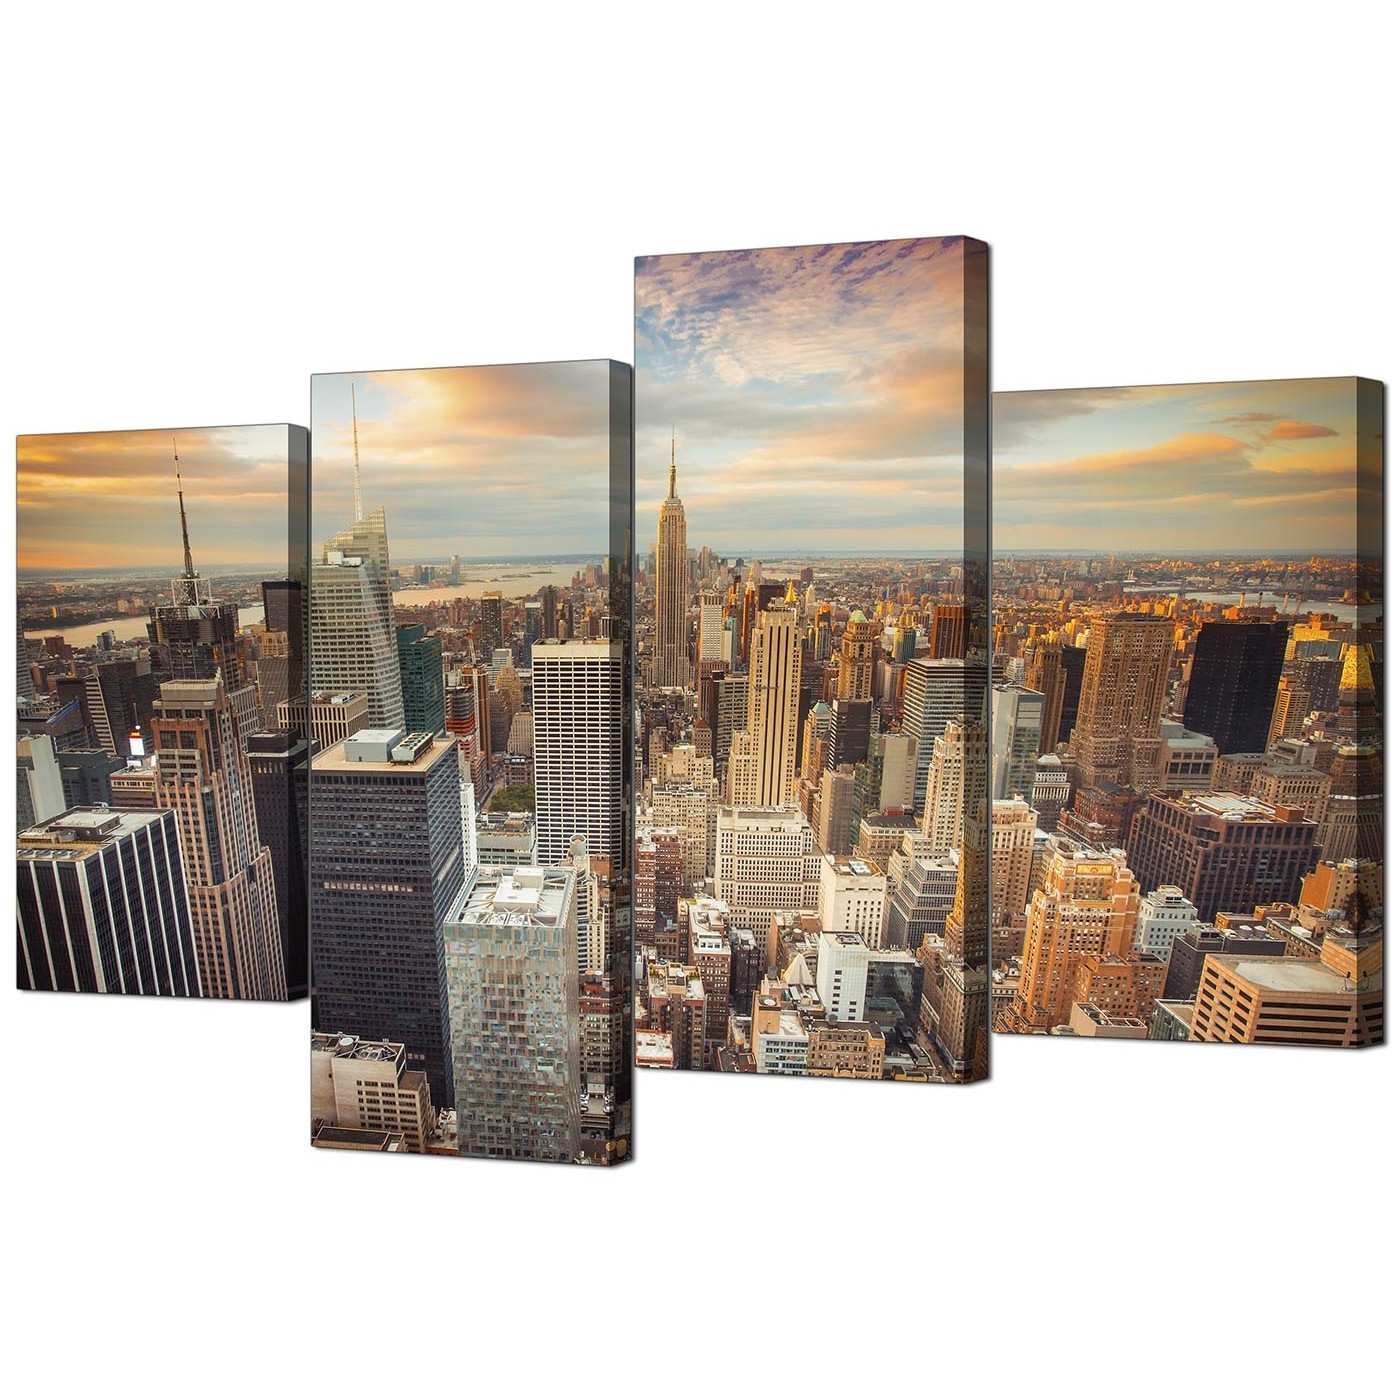 Canvas Prints Of The New York Skyline For Your Living Room – 4 Panel Inside Newest New York Canvas Wall Art (View 11 of 15)